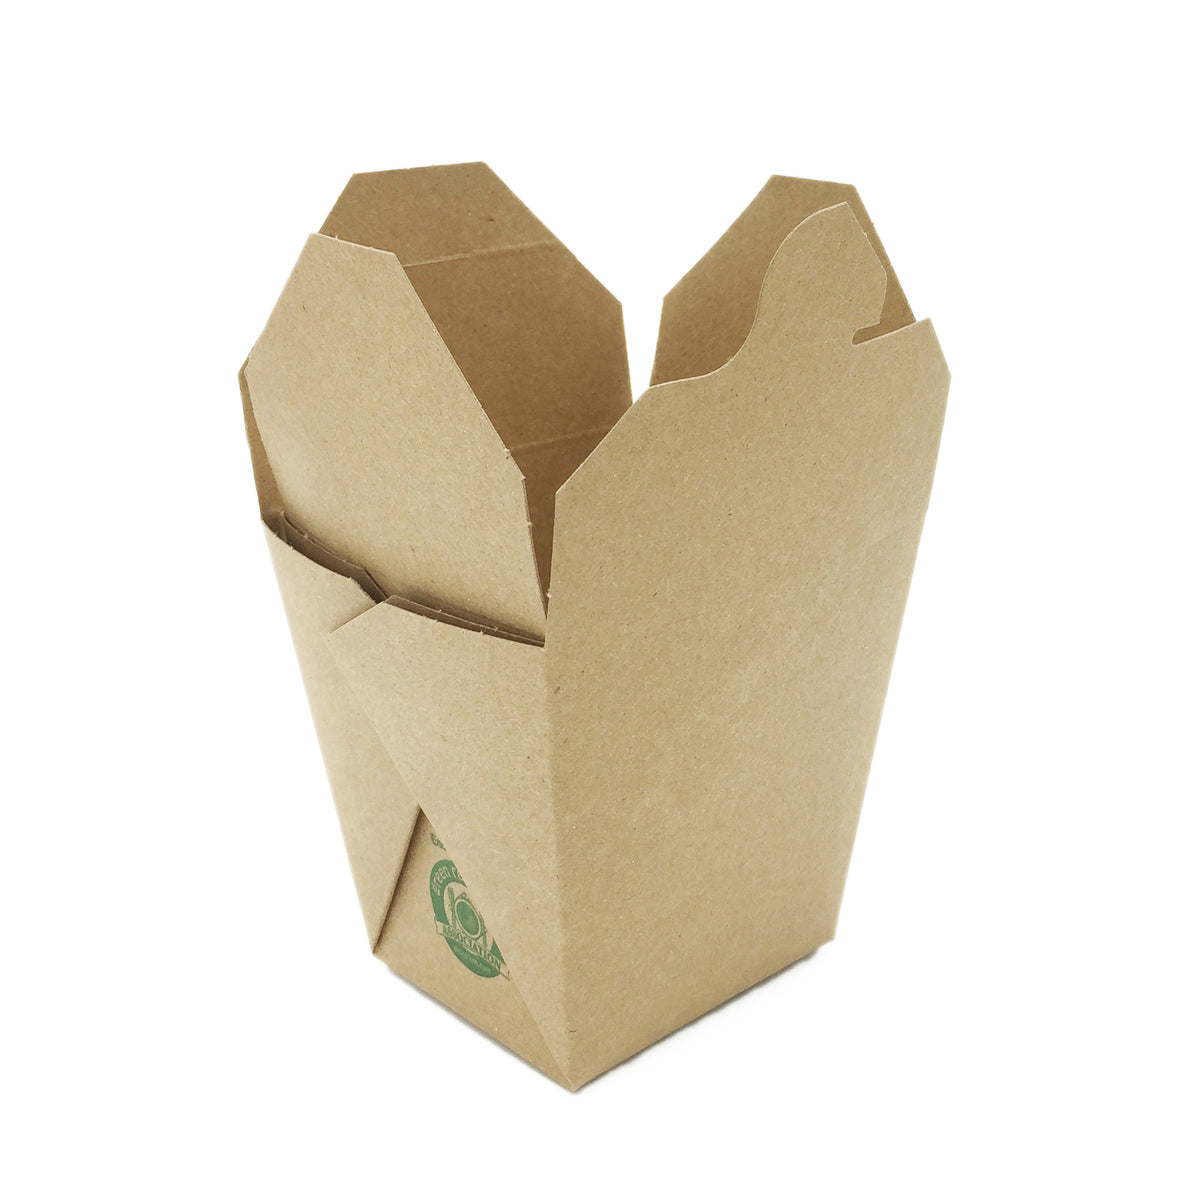 Takeout food recyclable kraft brown container boxes